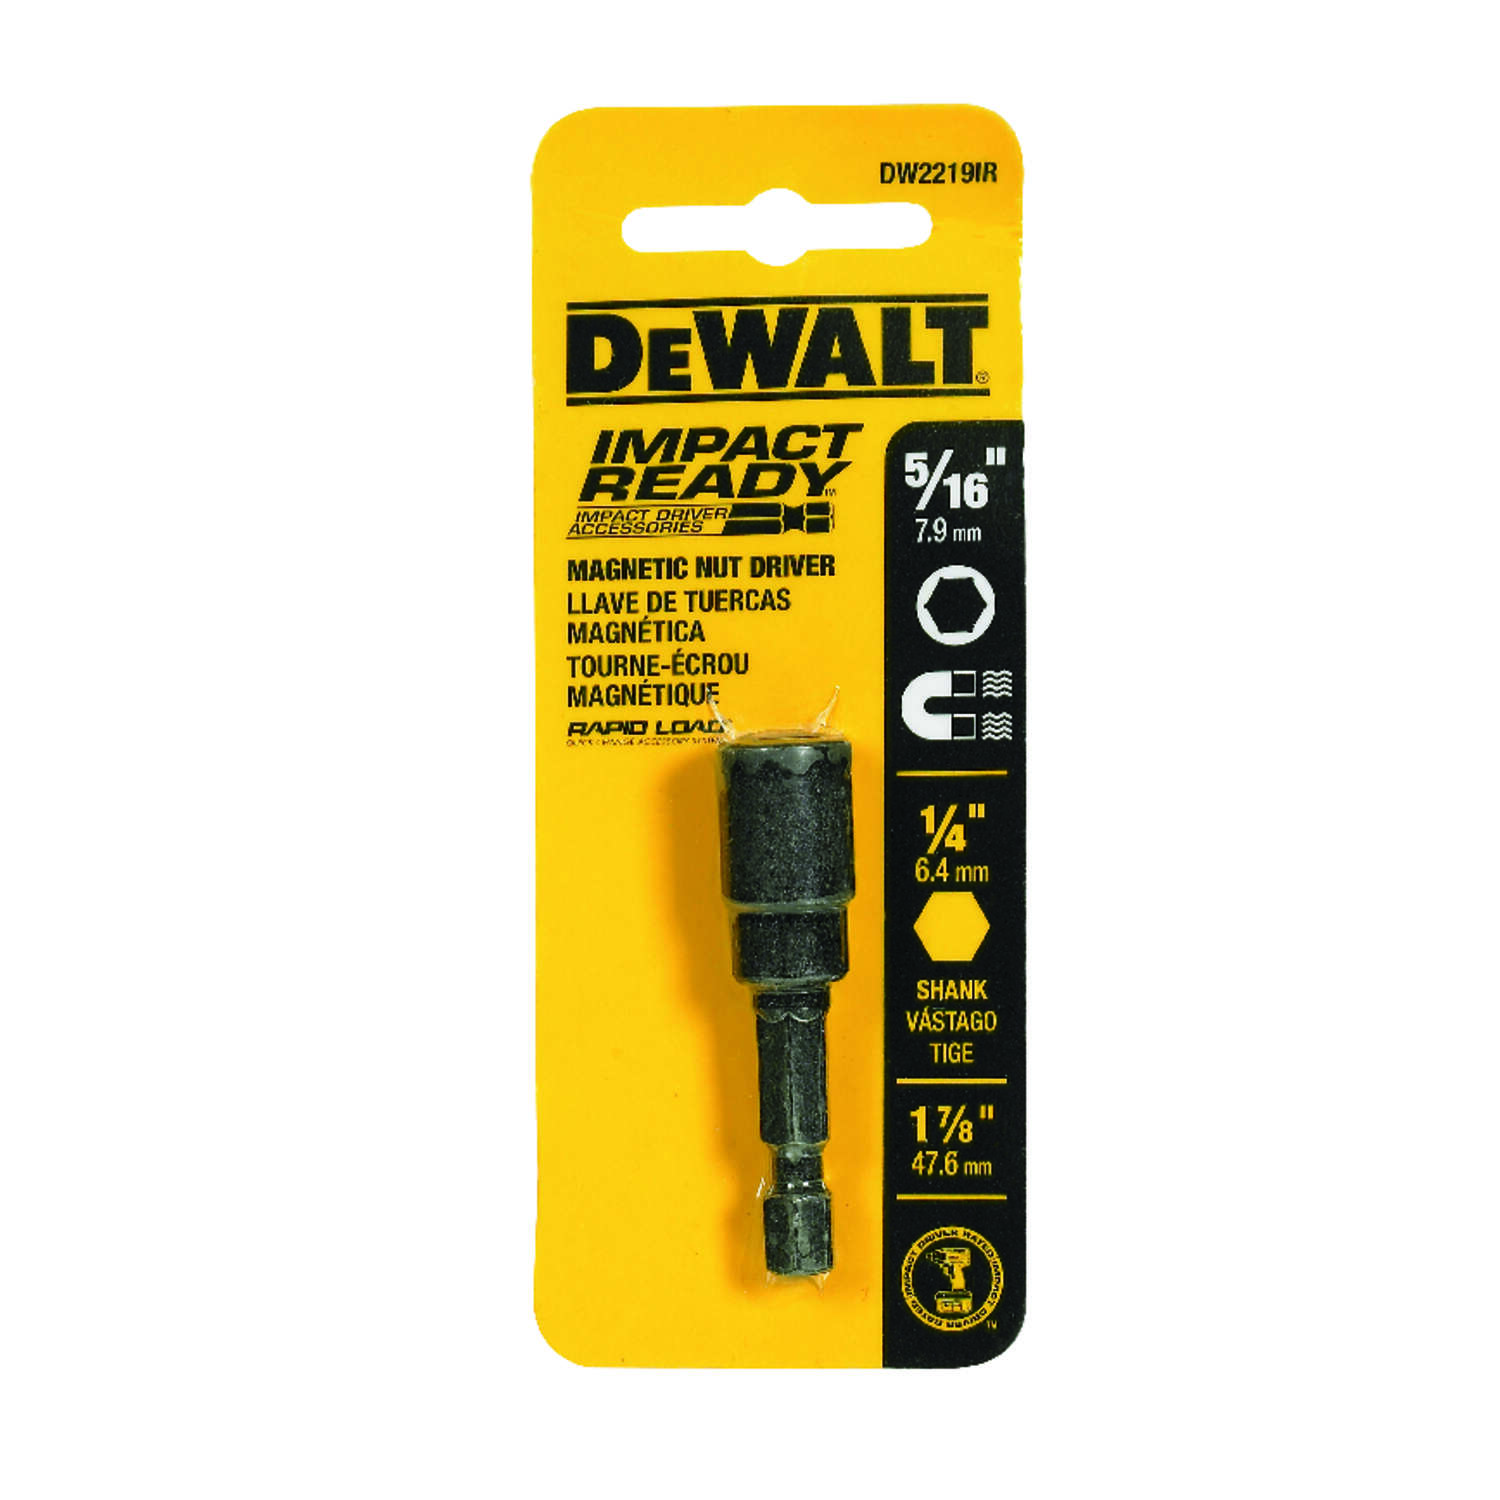 DeWalt  Impact Ready  5/16 in.  x 1-7/8 in. L Black Oxide  Nut Driver  1 pc.